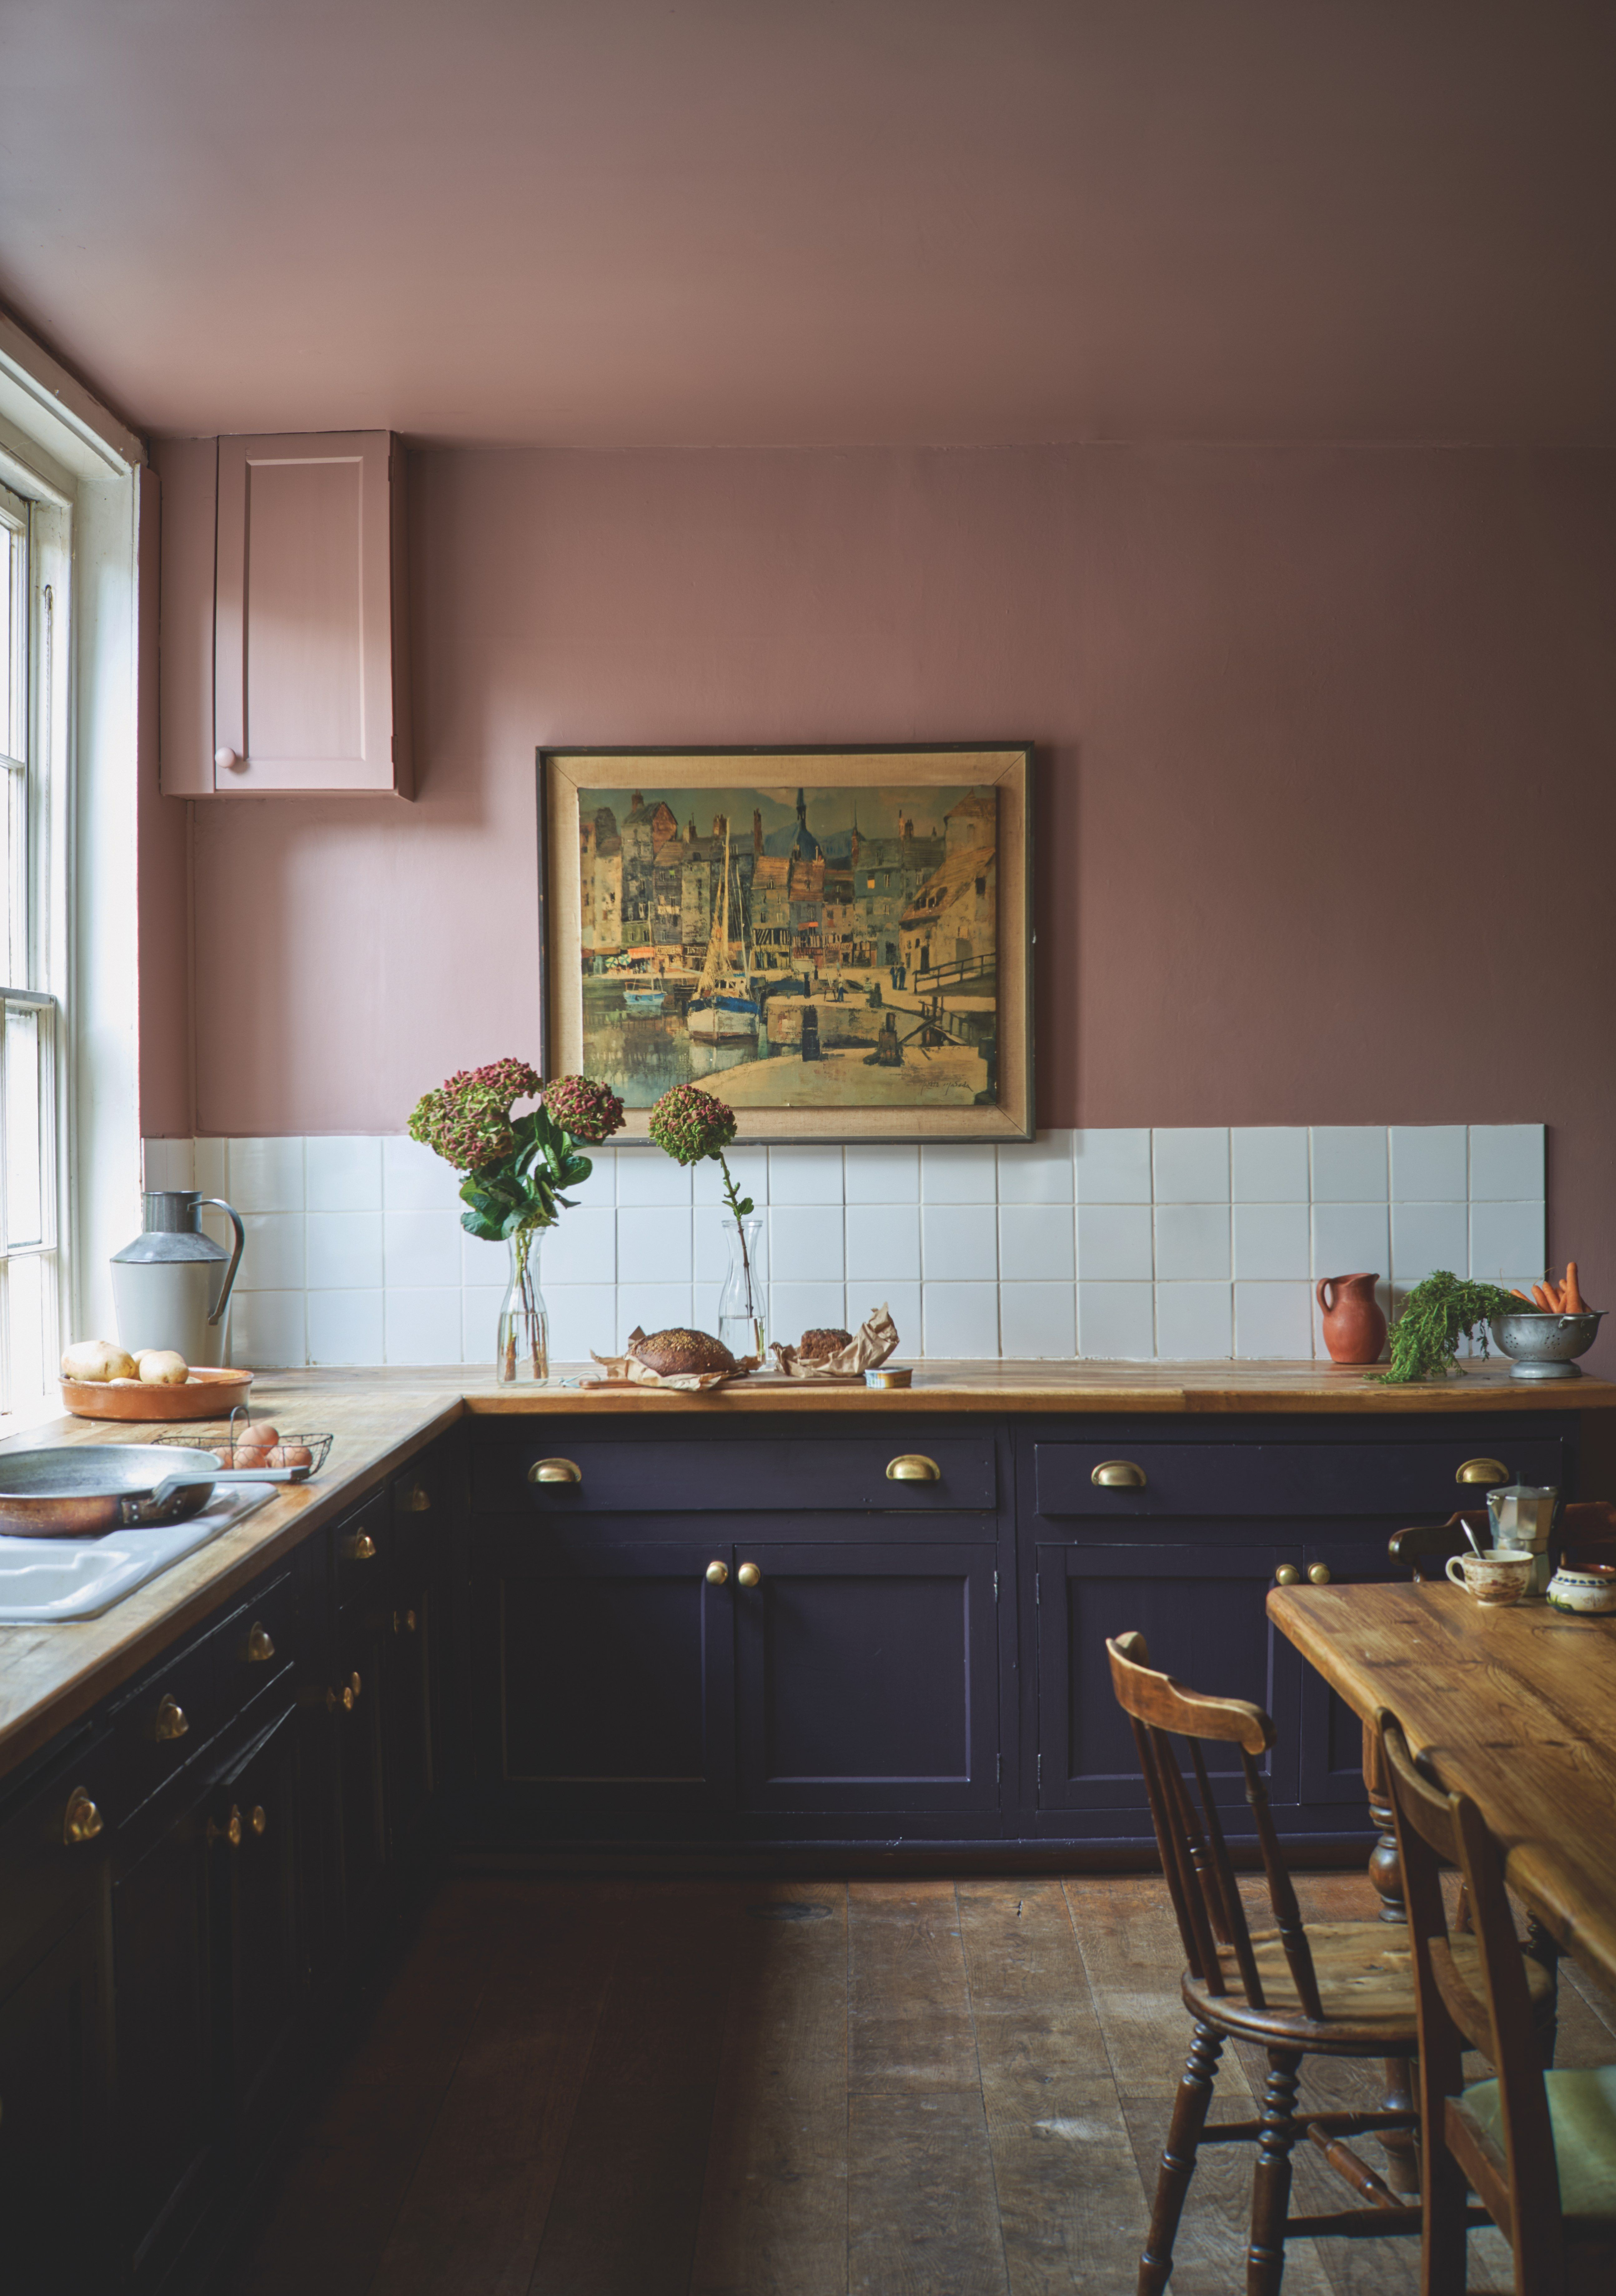 Traditional kitchens: 23 ways to create rustic country charm